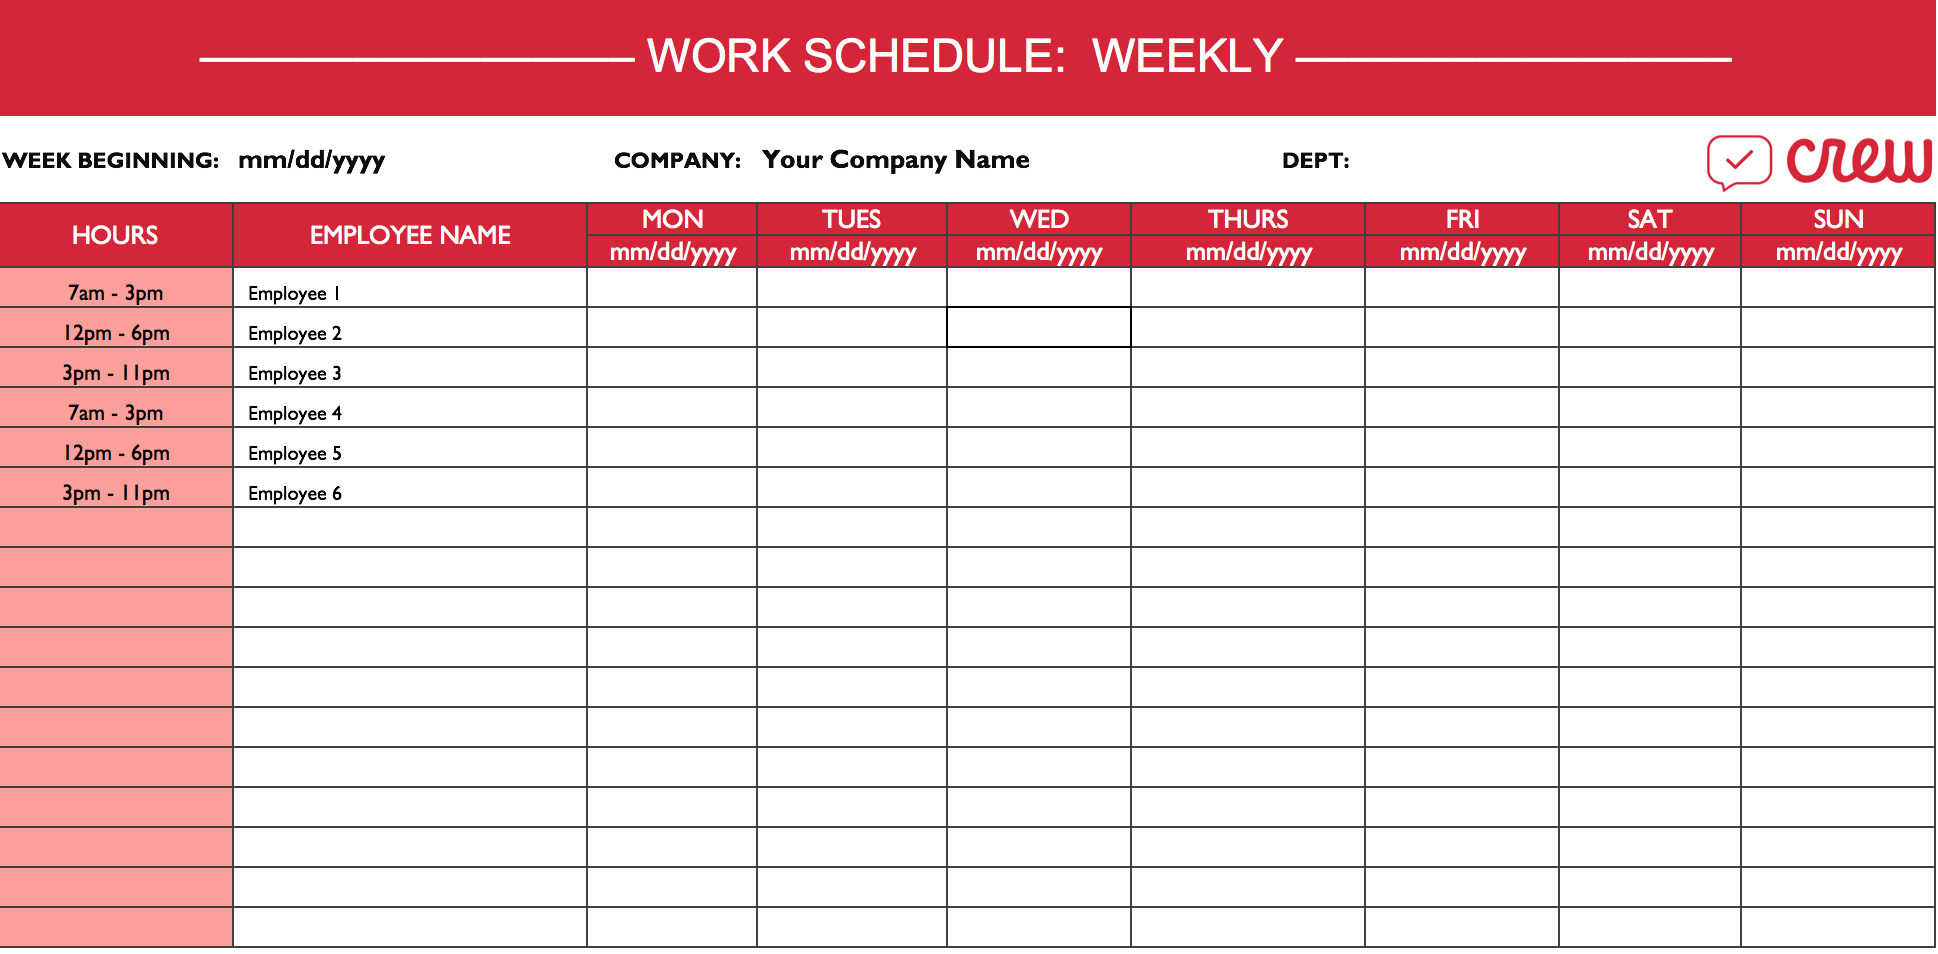 Work Schedule Template Word from mthomearts.com